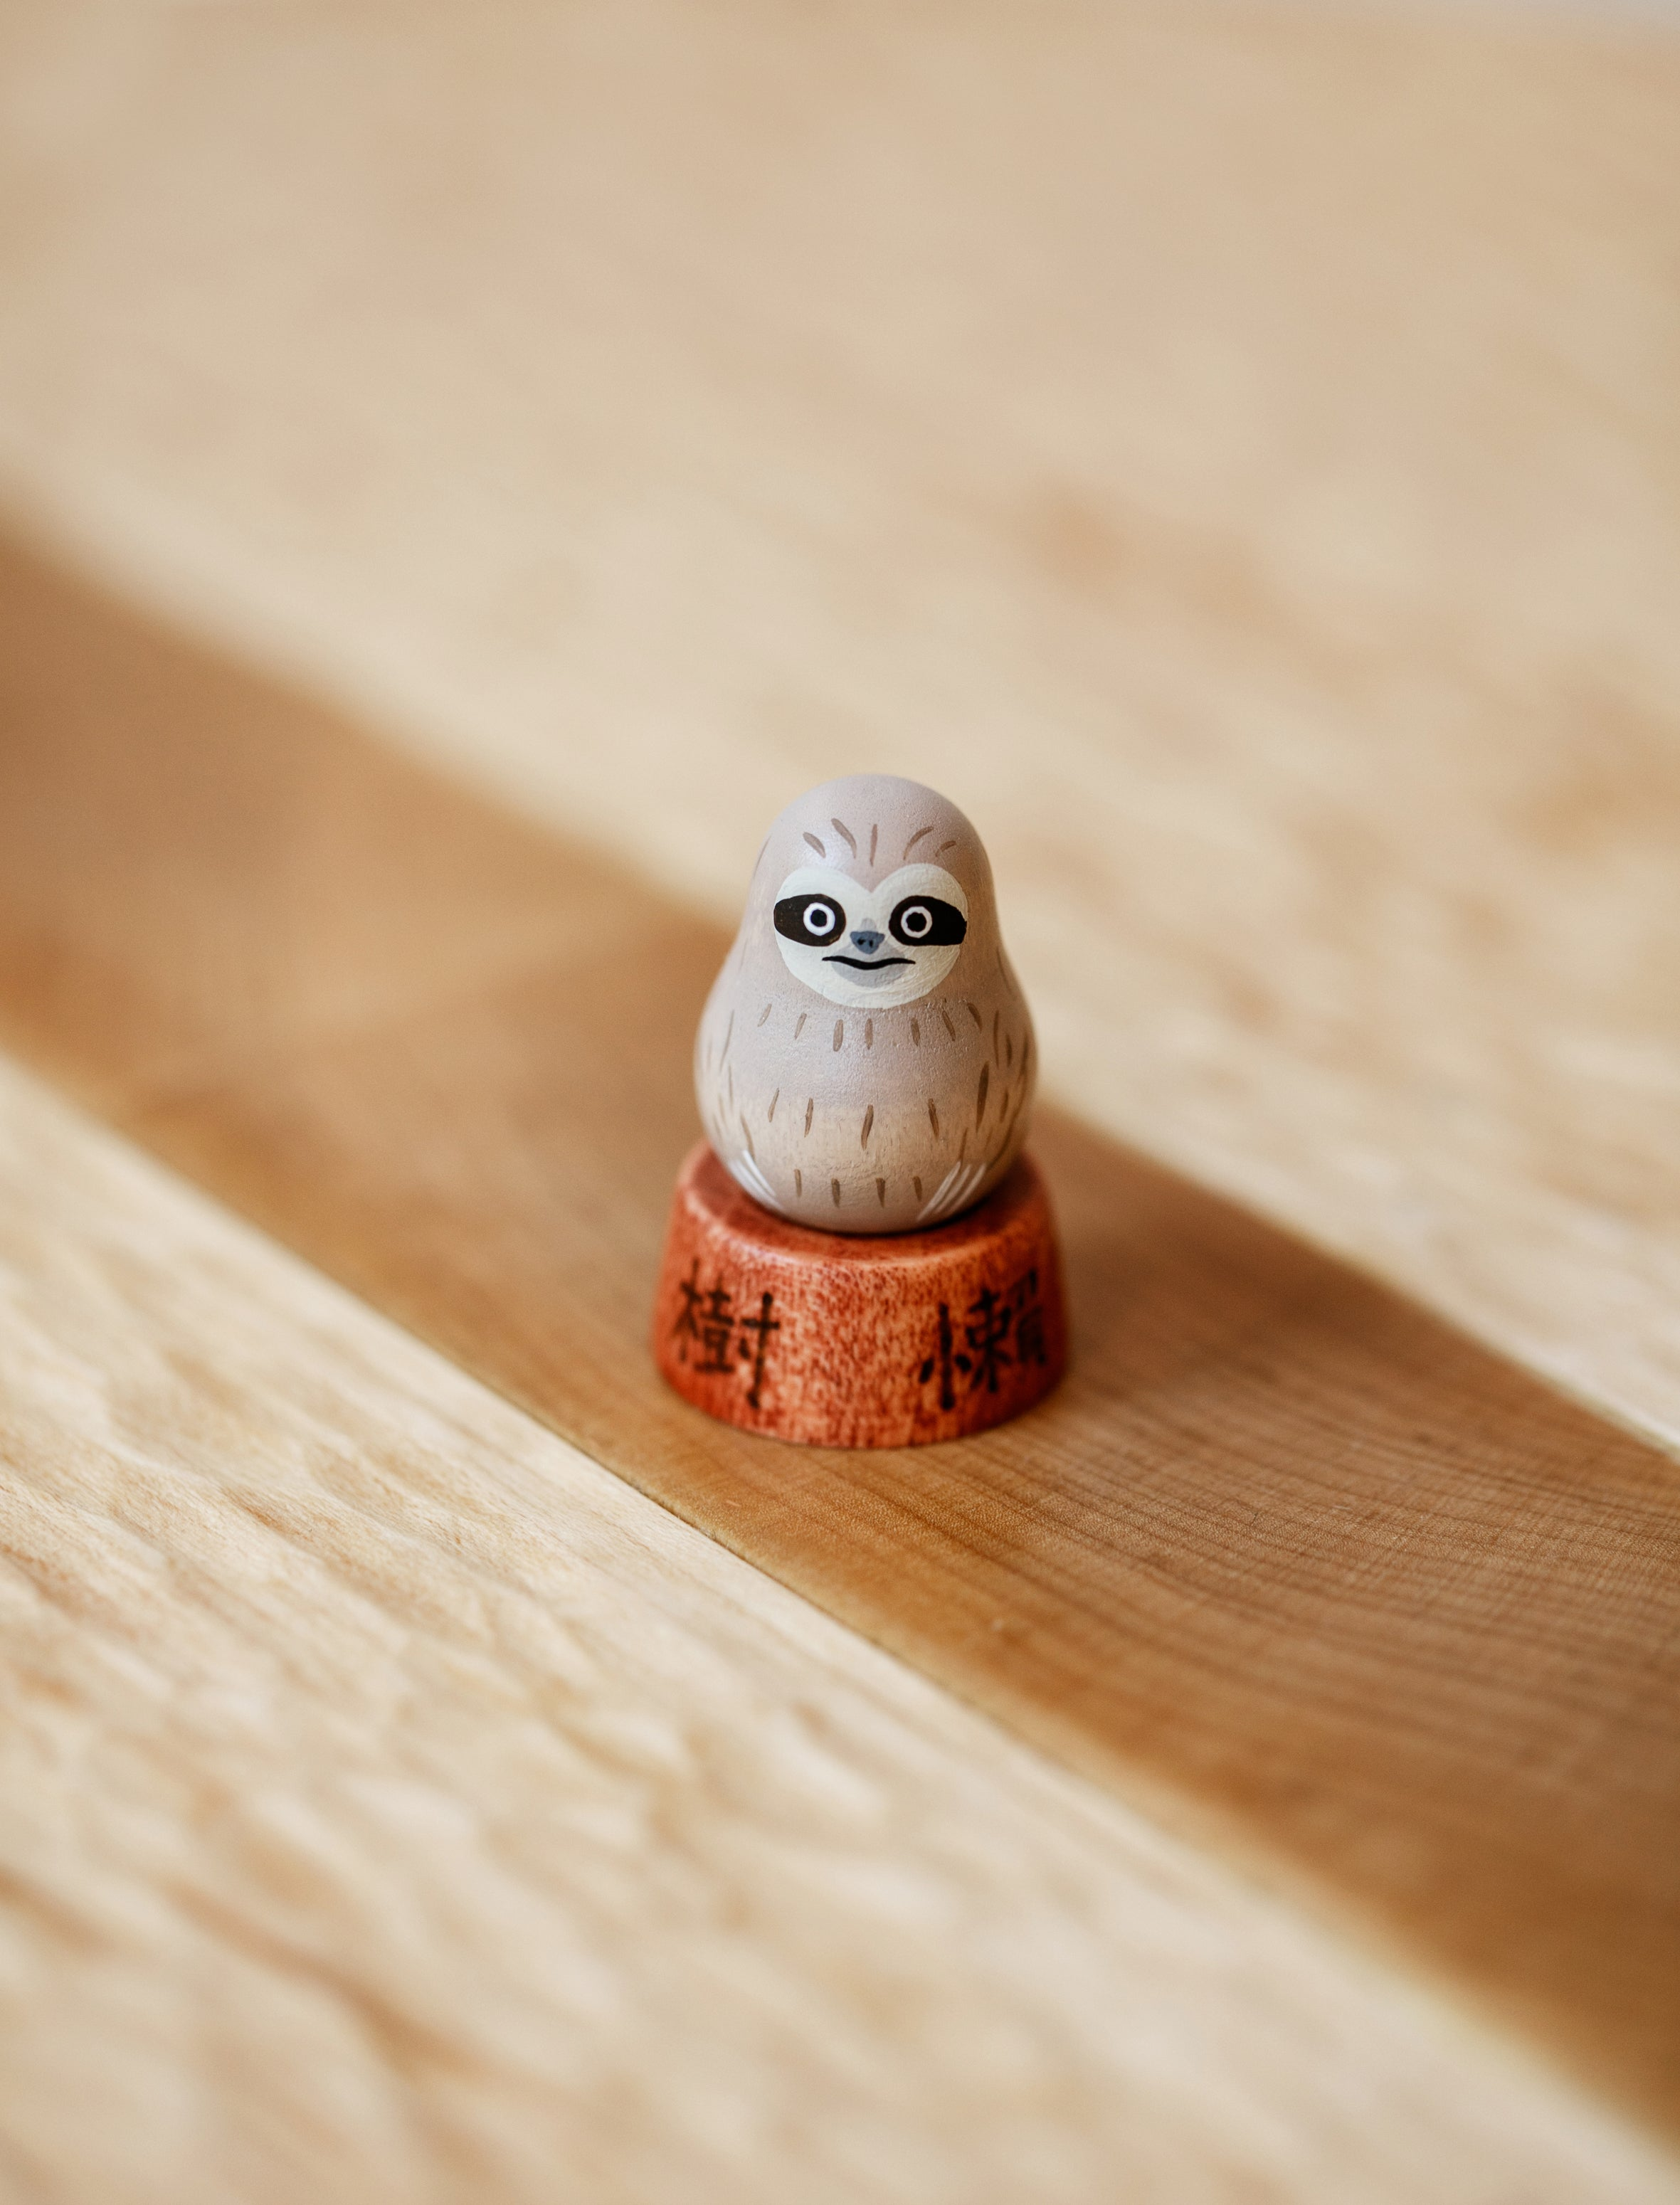 Sloth Wooden Toy